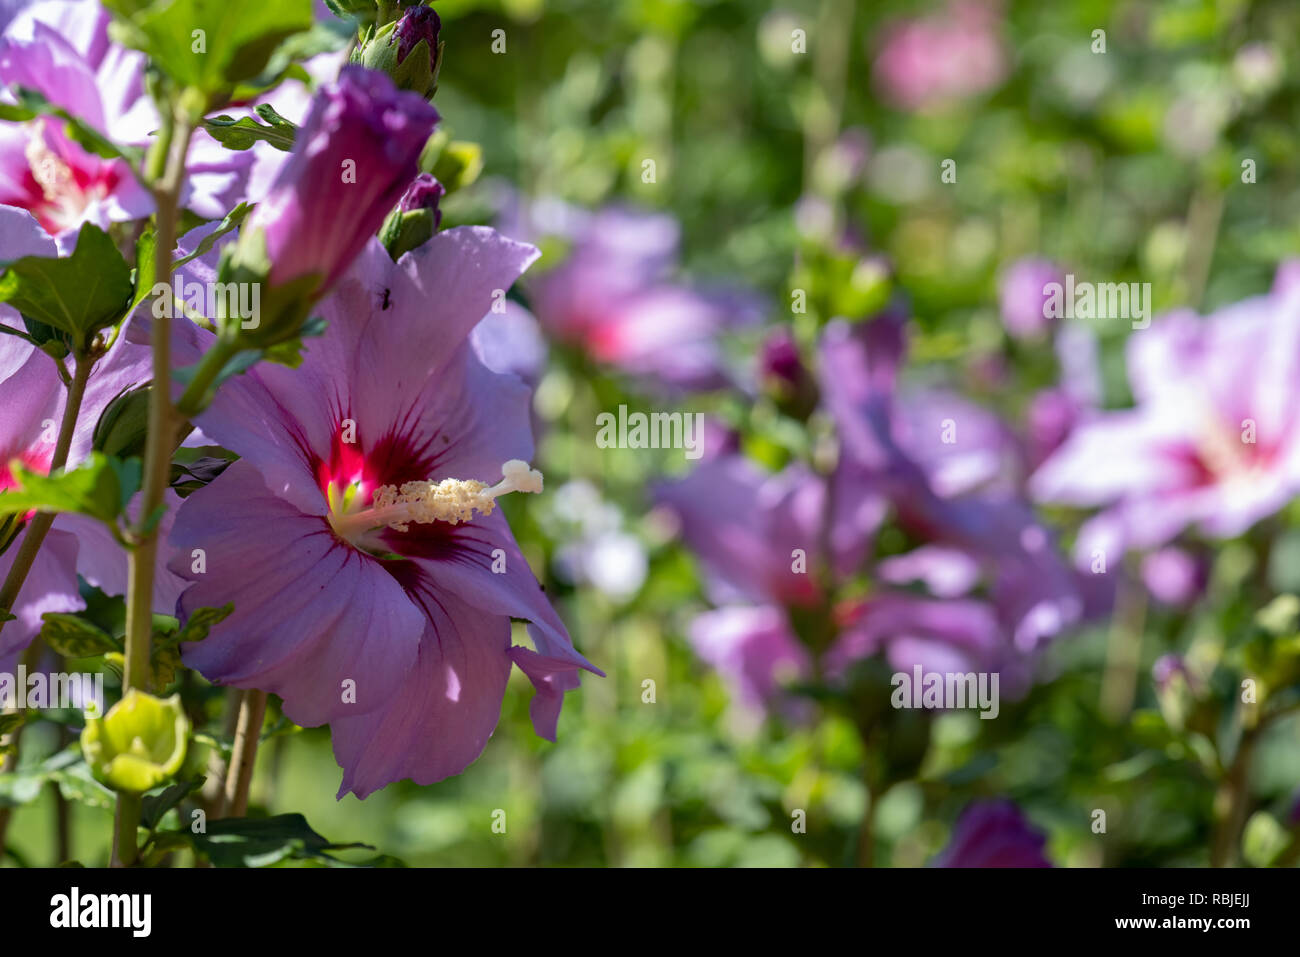 Bright outdoor natural floral close up image of a single wide open pink purple hibiscus blossom on a bush with buds,colorful blurred  background,sunny - Stock Image